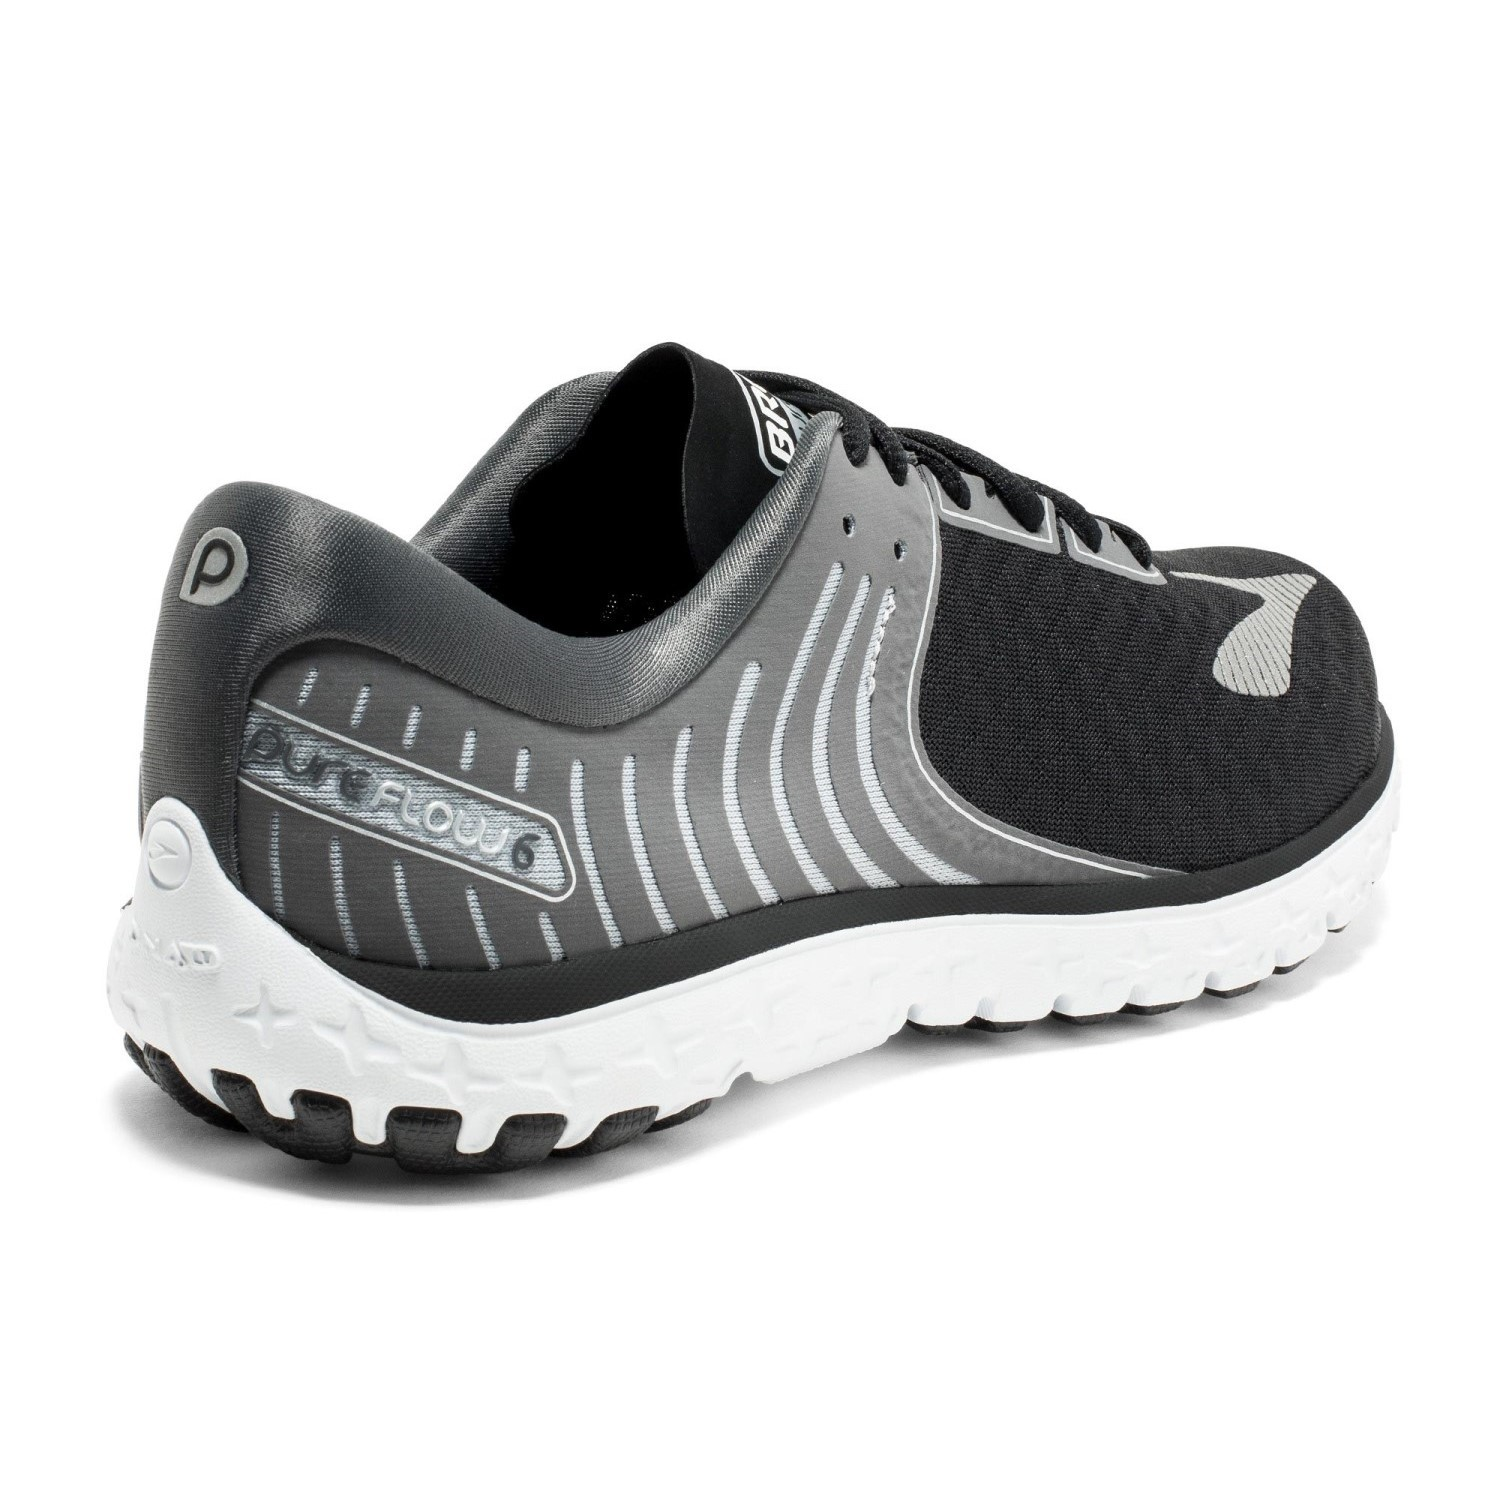 b62e4296408 Brooks PureFlow 6 - Mens Running Shoes - Black Anthracite Silver ...